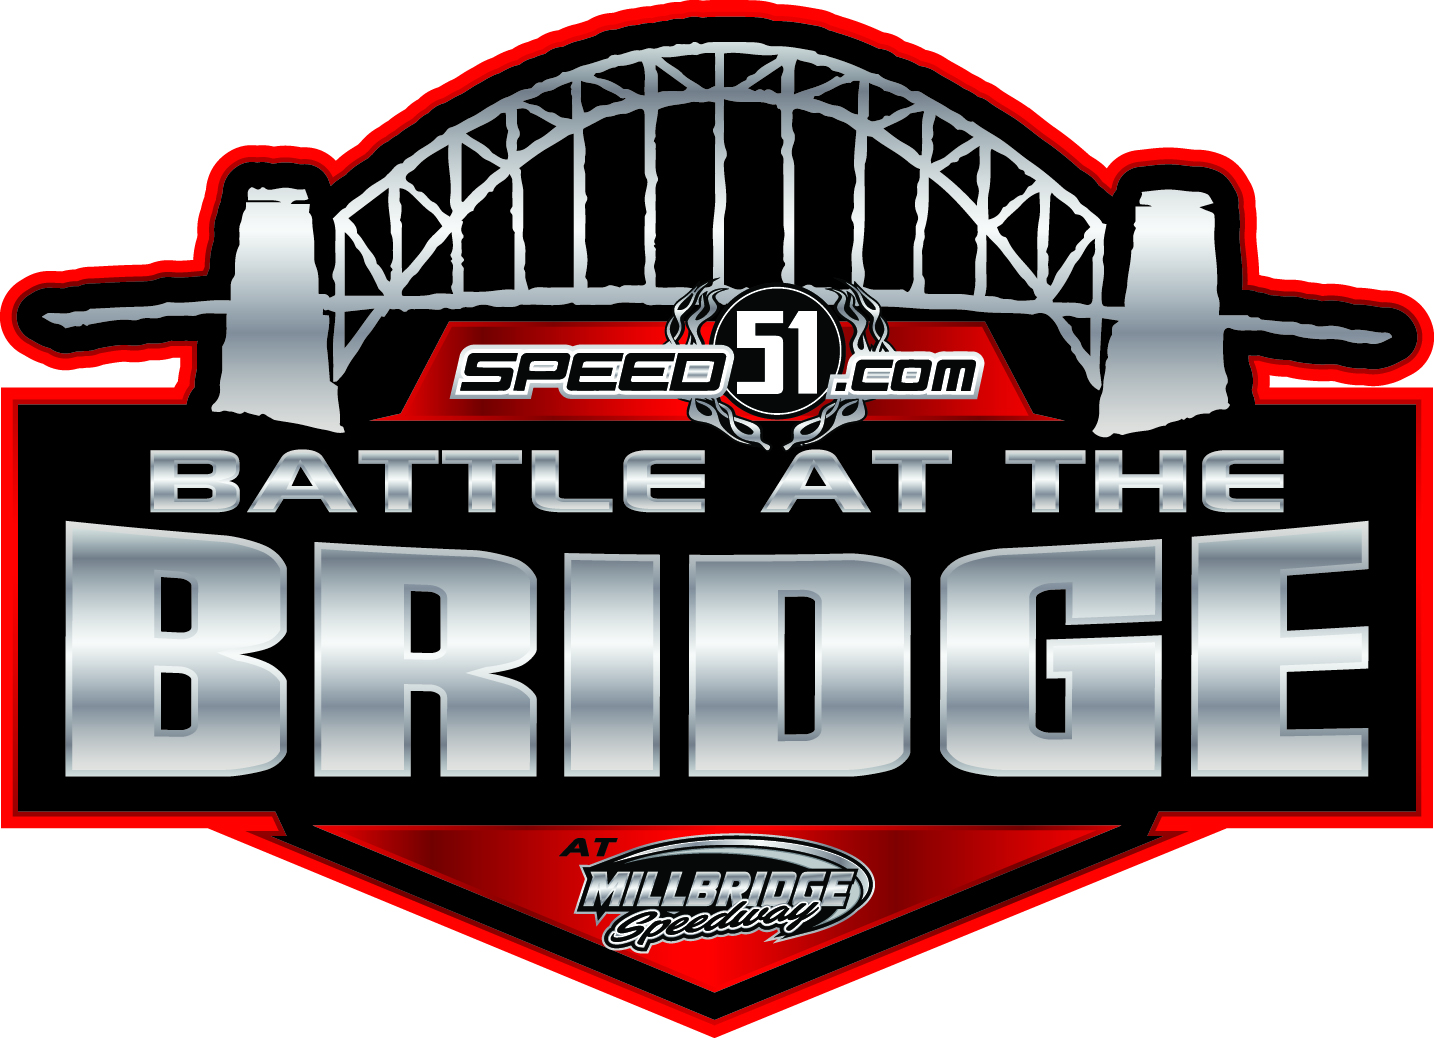 Battle-at-the-bridge-logo-FINAL